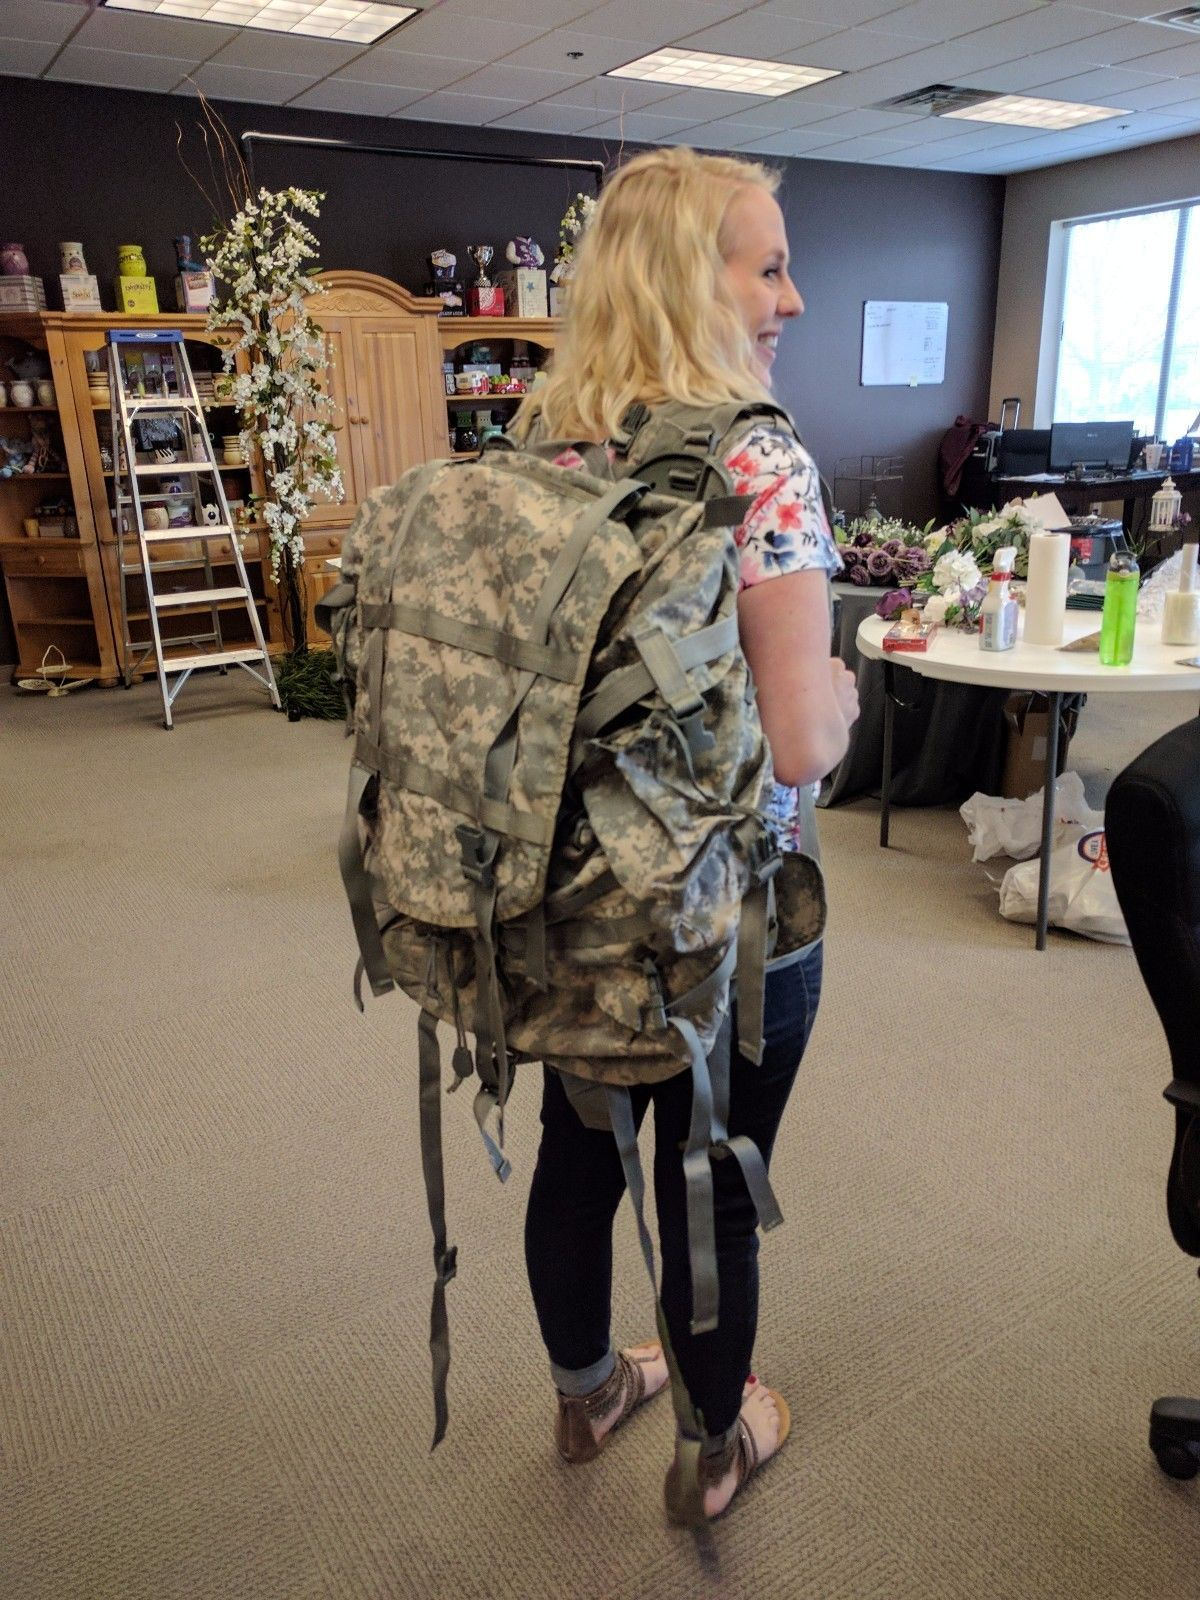 Molle II Large Rucksack w/ Frame and sustainment pouches - Free item w/ Purchase